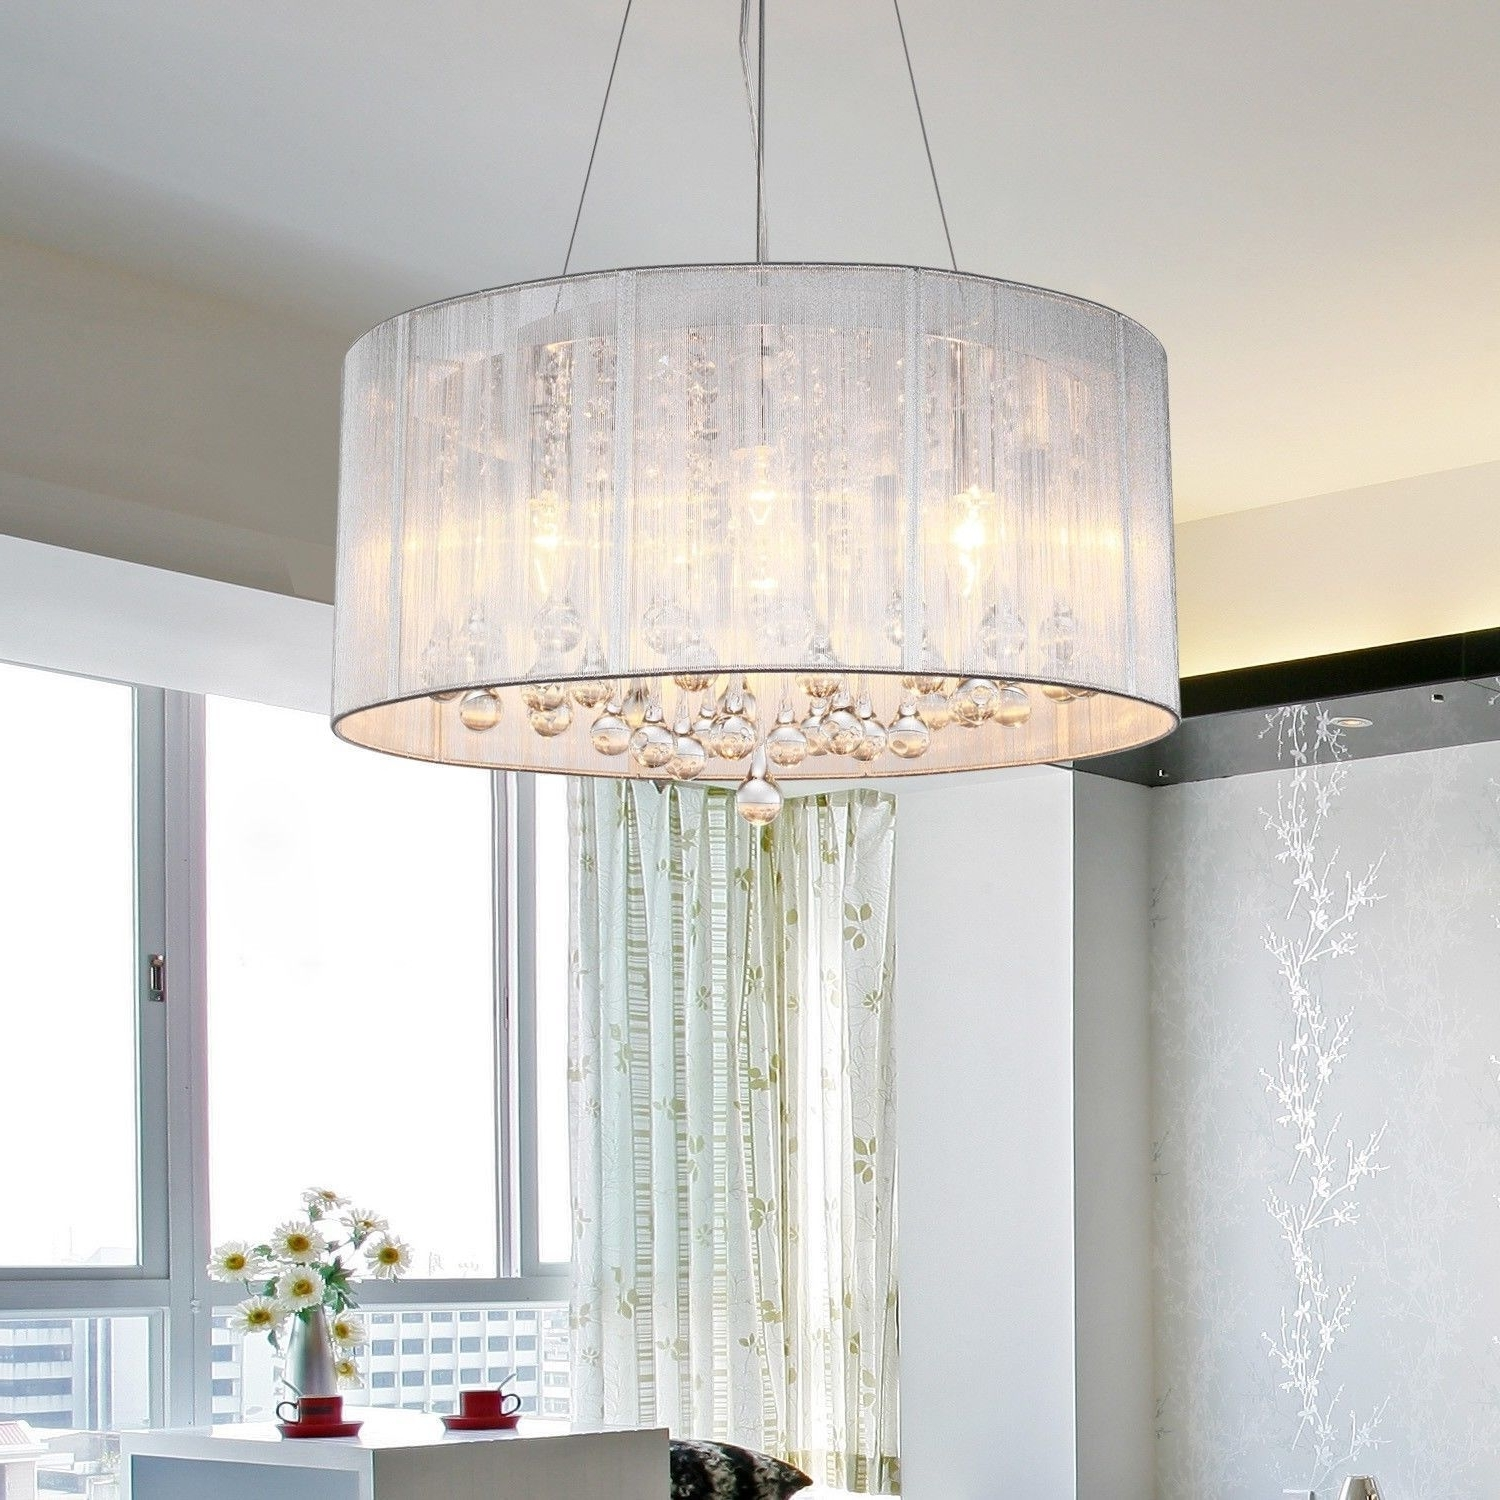 How To Choose A Chandelier Lampshade – Goodworksfurniture Regarding Latest Lampshade Chandeliers (View 4 of 15)